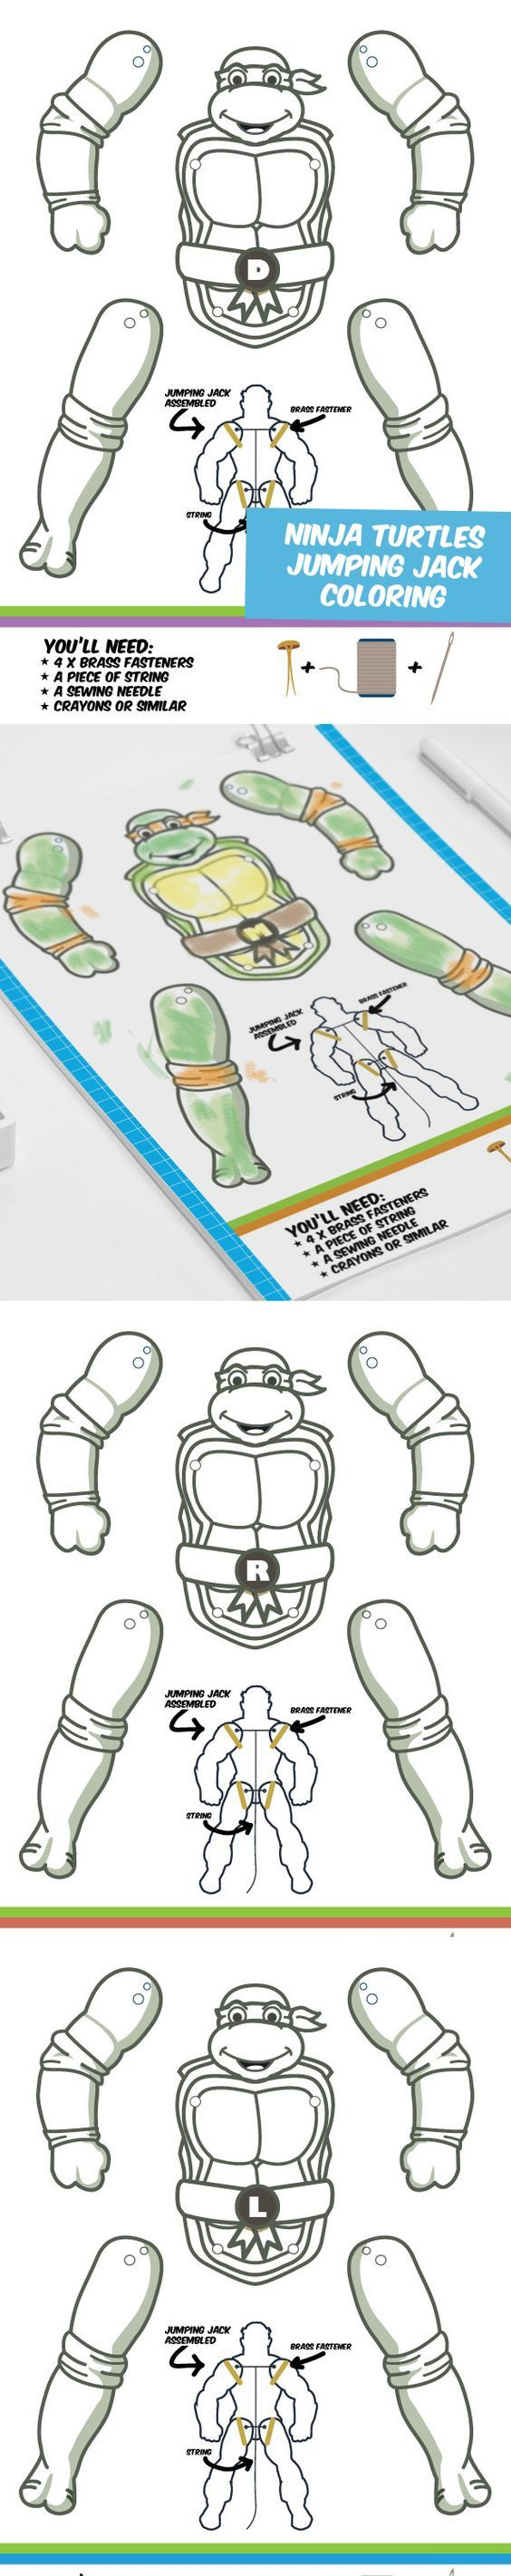 Create your own Ninja Turtles puppets. Color them the way you want them. Great papercrafts for kids!: